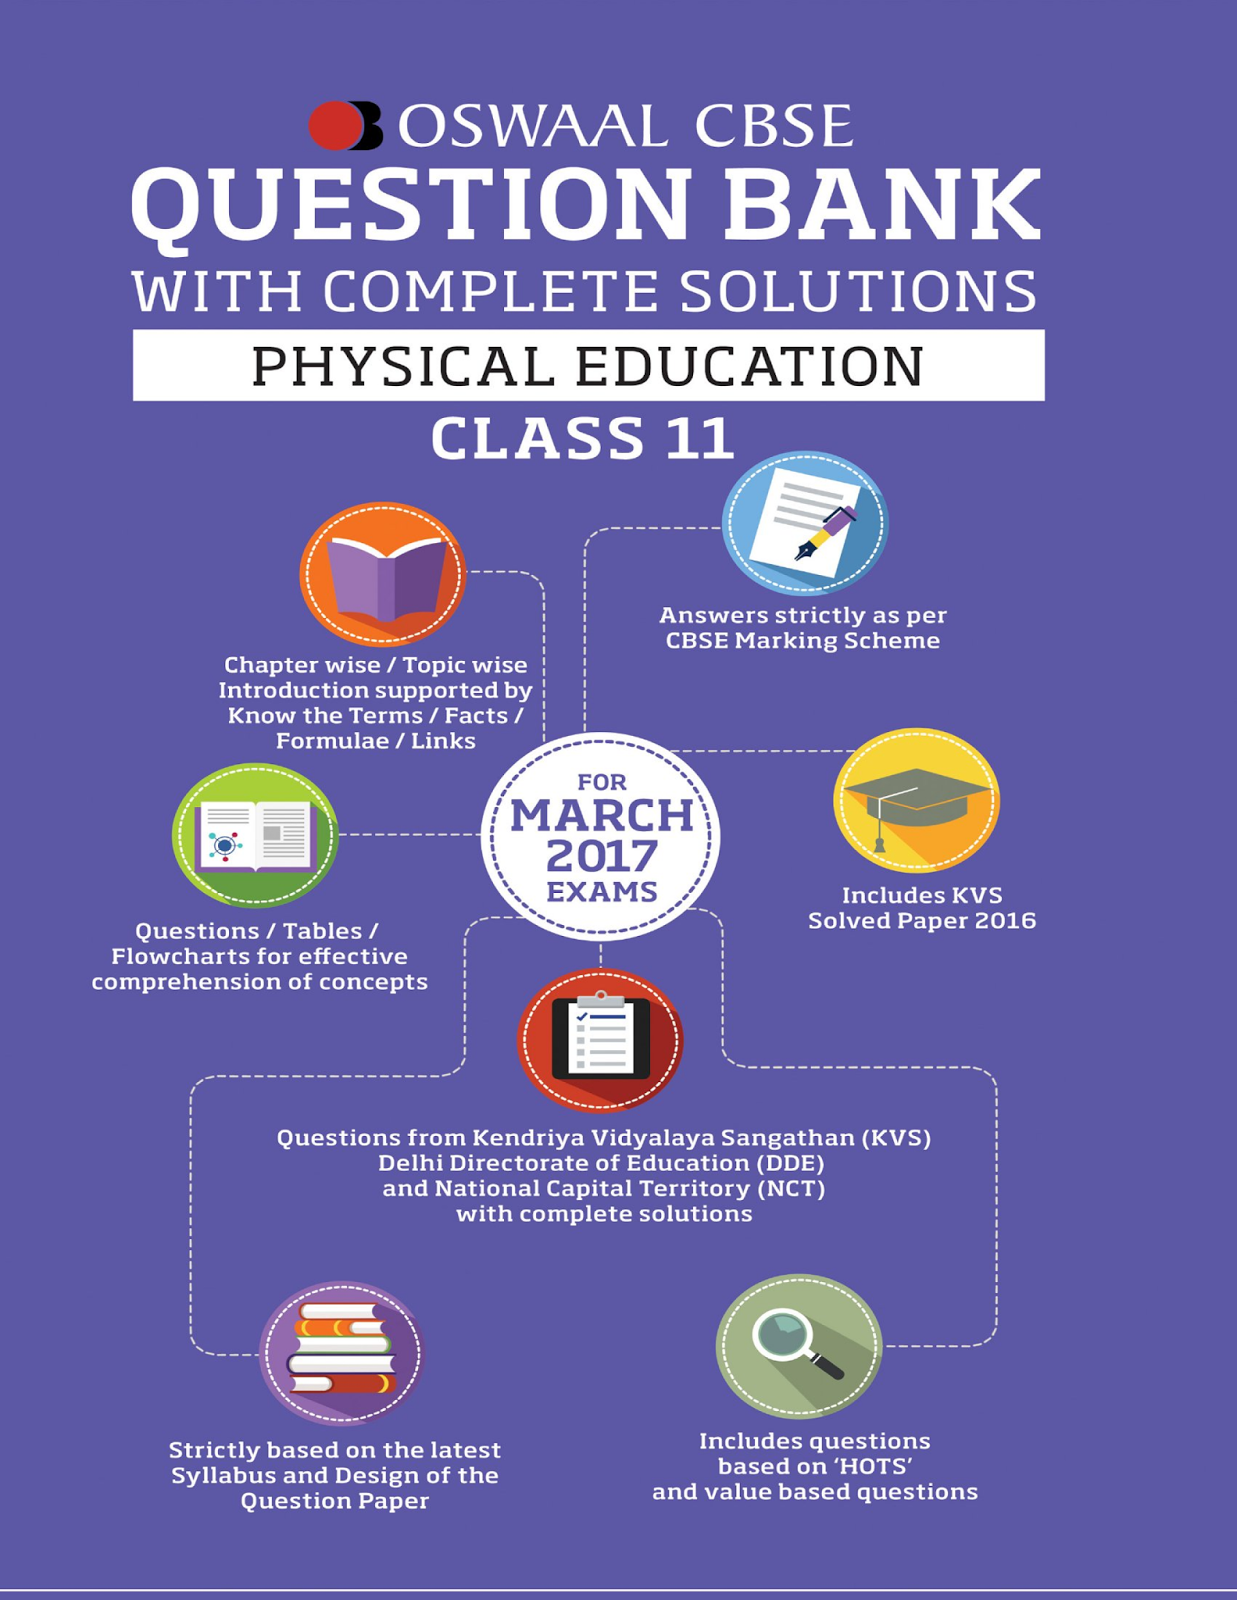 Oswaal cbse question bank with complete solutions for class 11 oswaal cbse question bank with complete solutions for class 11 physical education for 2017 exams malvernweather Images